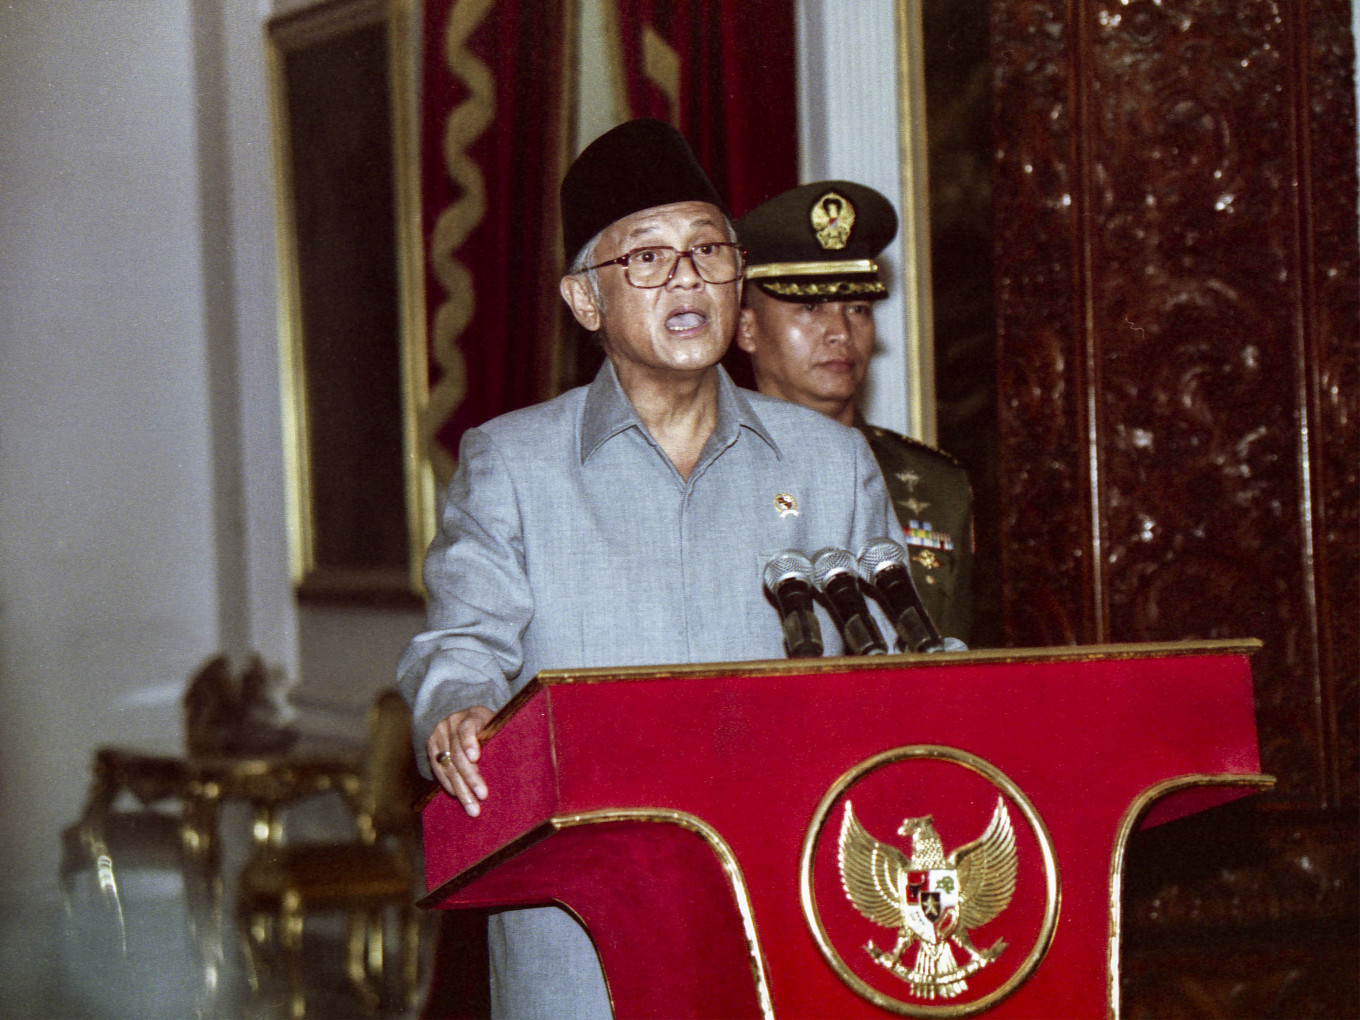 President B.J Habibie announces his Reform/Development Cabinet, which comprises 20 members of the previous lineup and 16 newcomers. Habibie vowed to build a clean and independent government when he announced the new cabinet at Merdeka Palace on Friday, May 22. 1998. JP/Alex Rumi